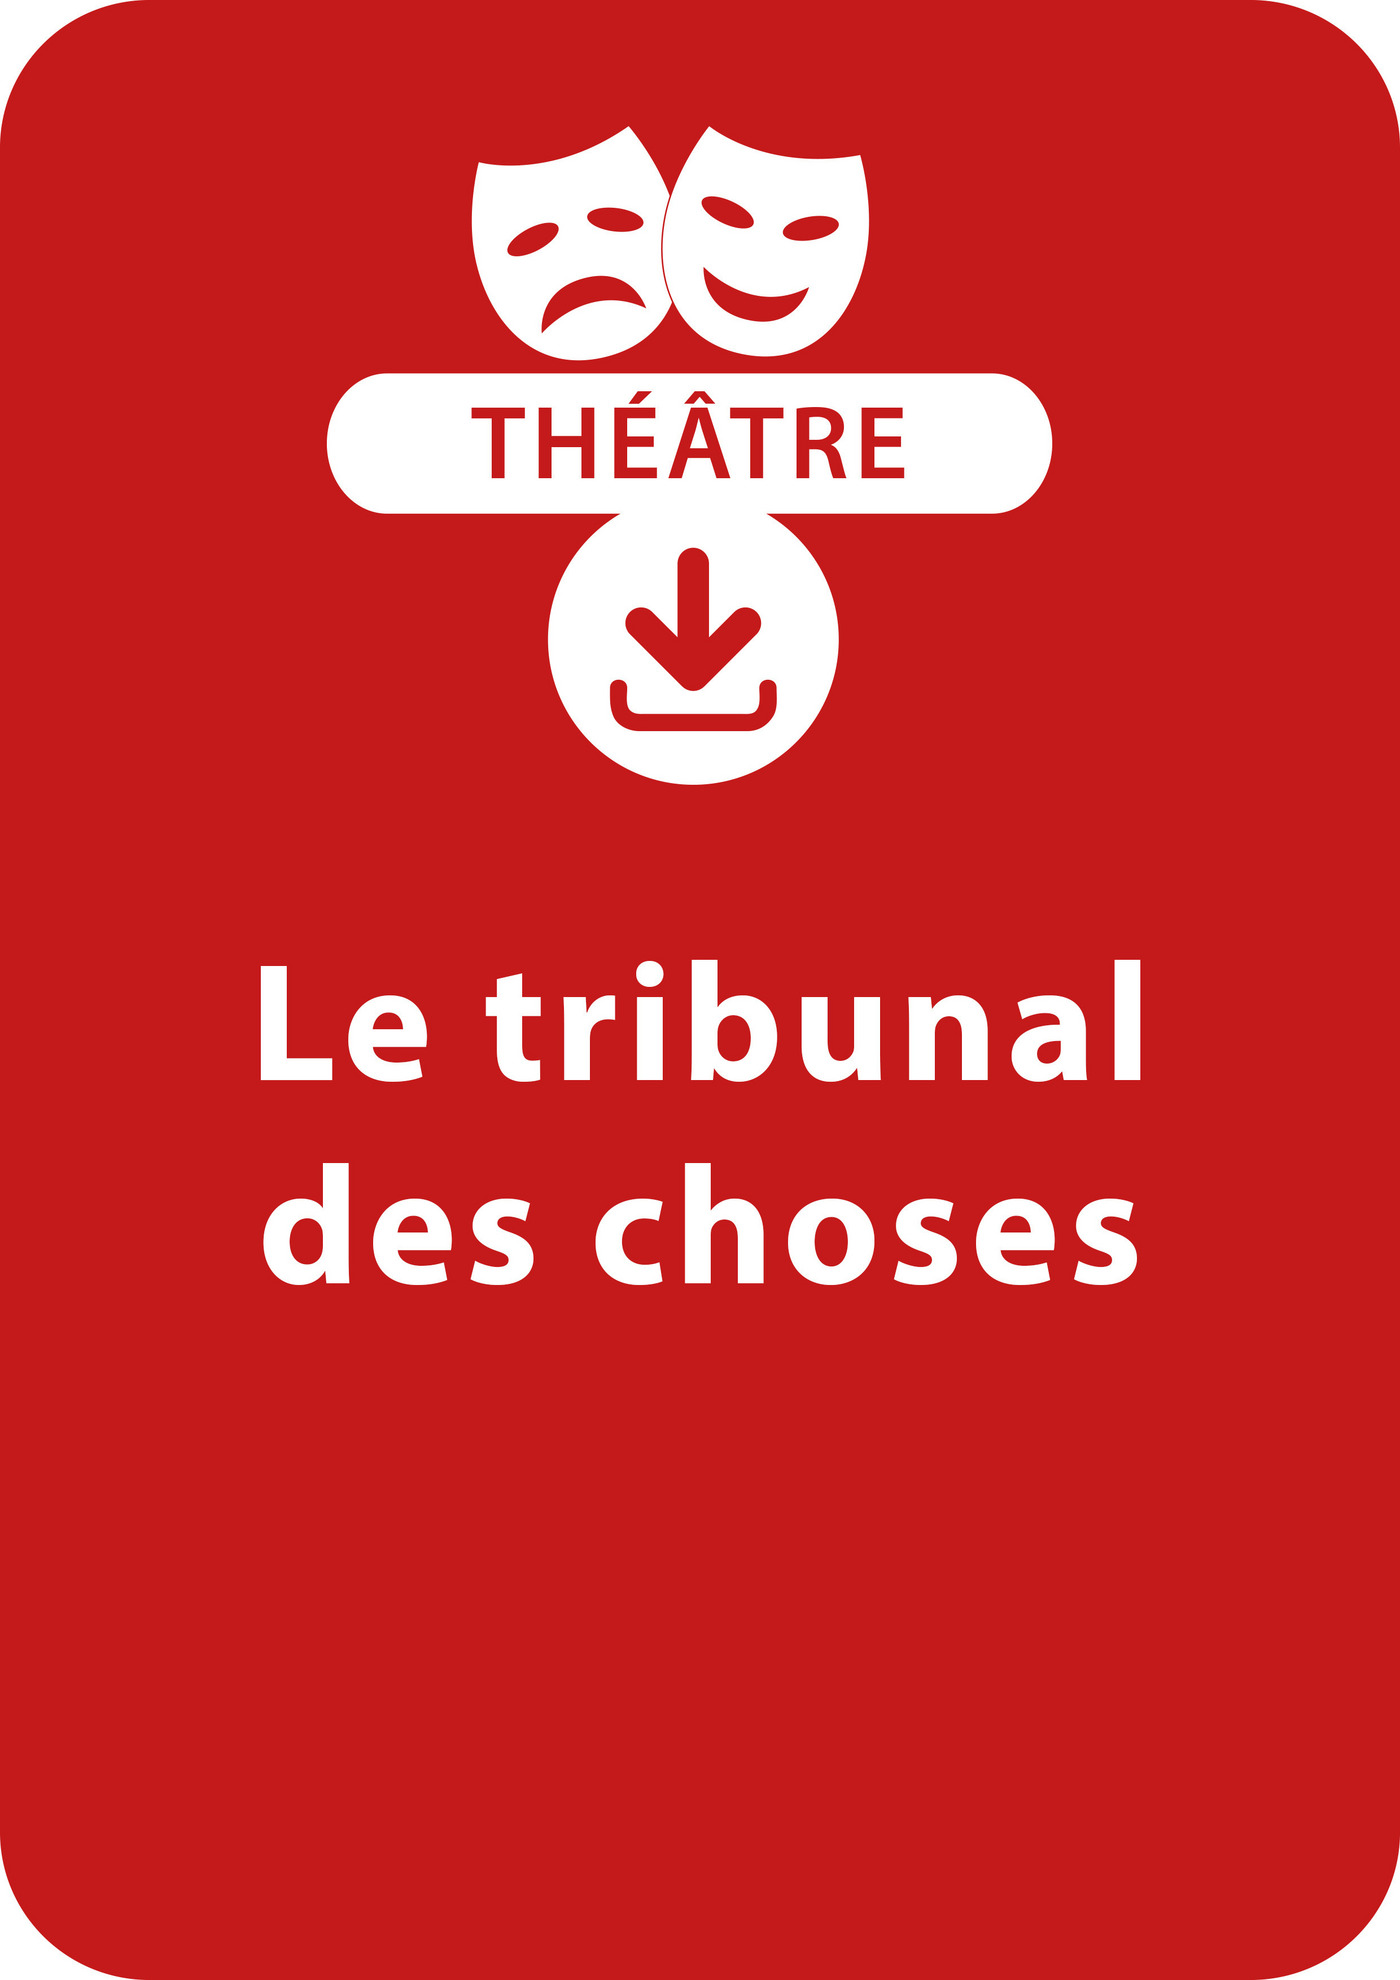 Le tribunal des choses